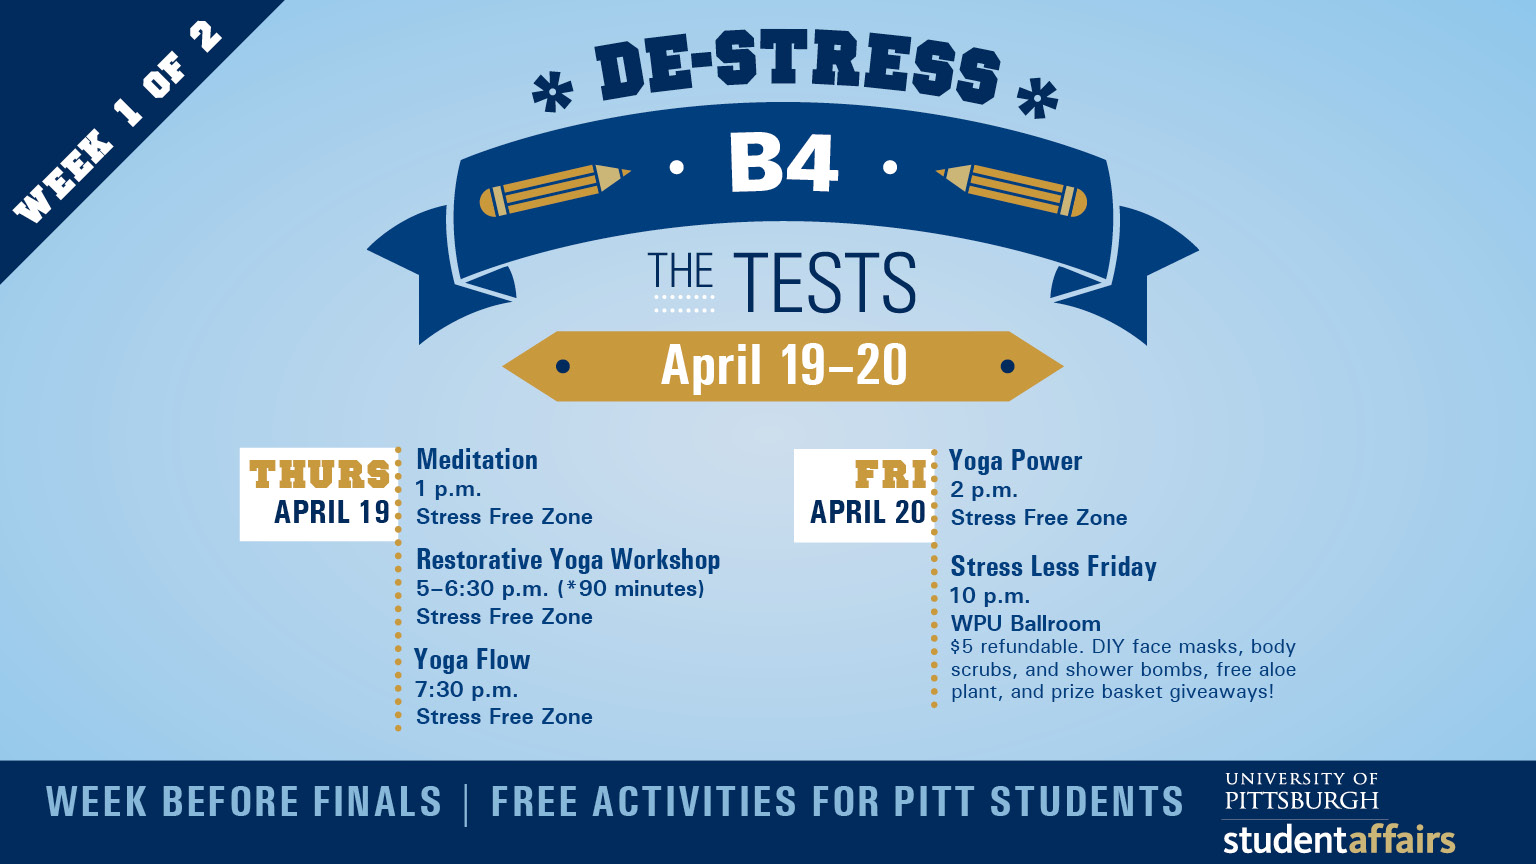 DeStress_tvslides_ April 20